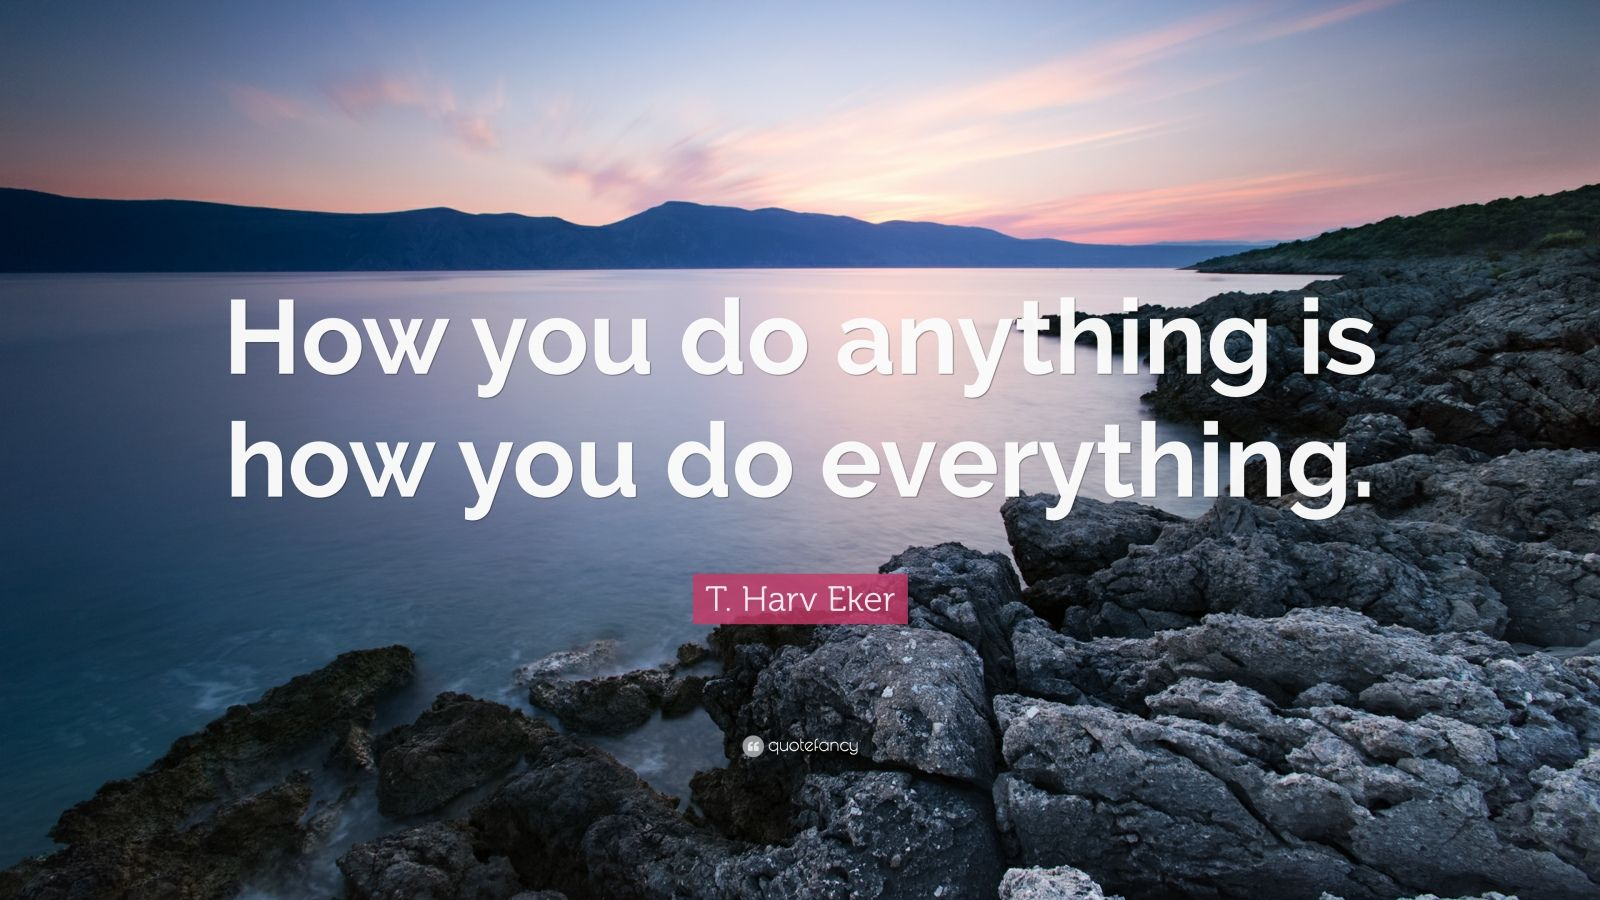 T harv eker quote how you do anything is how you do everything